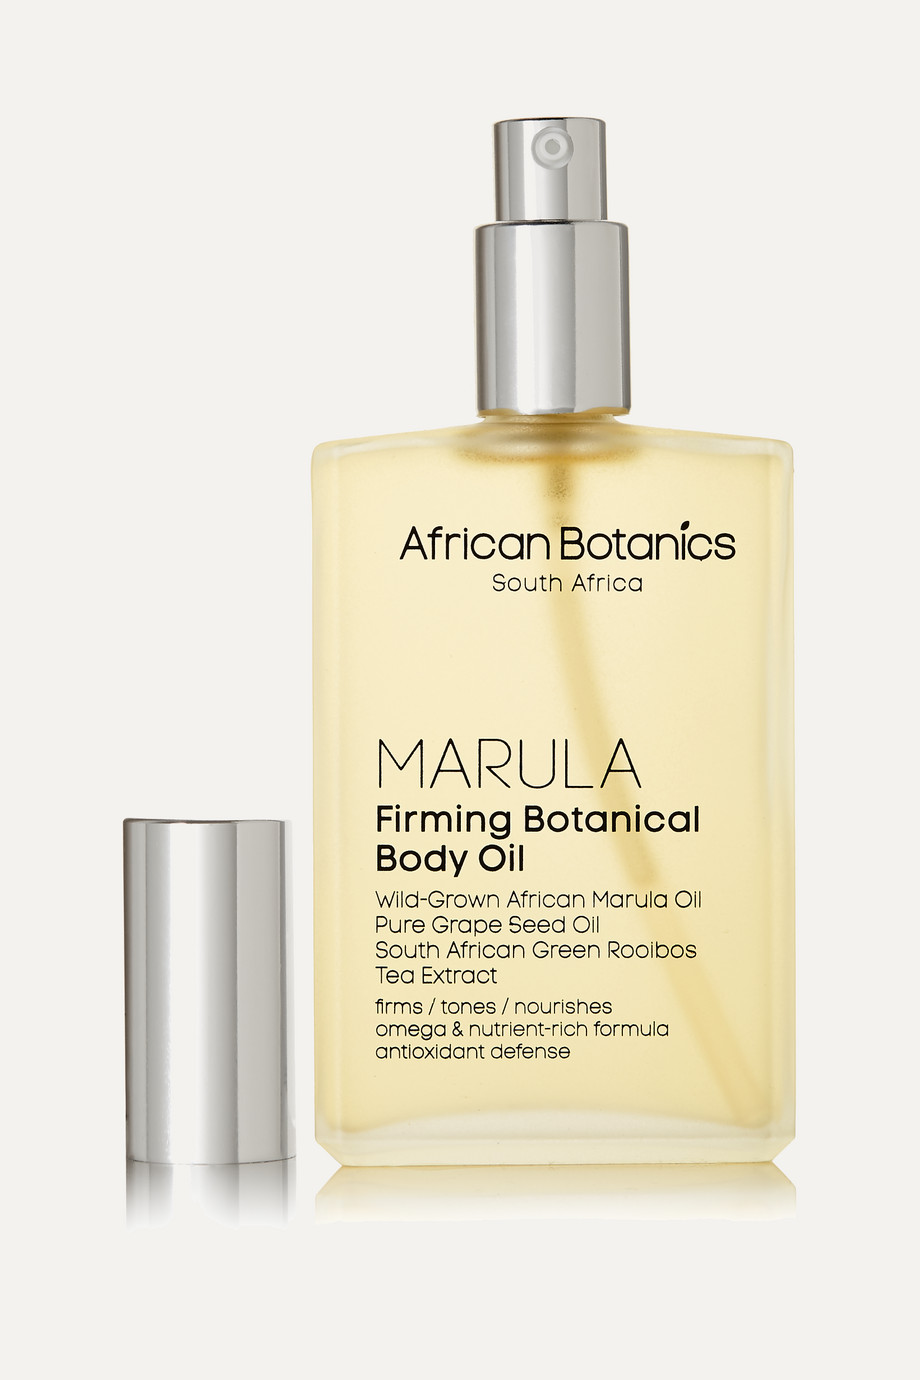 African Botanics Marula Firming Botanical Body Oil, 100ml